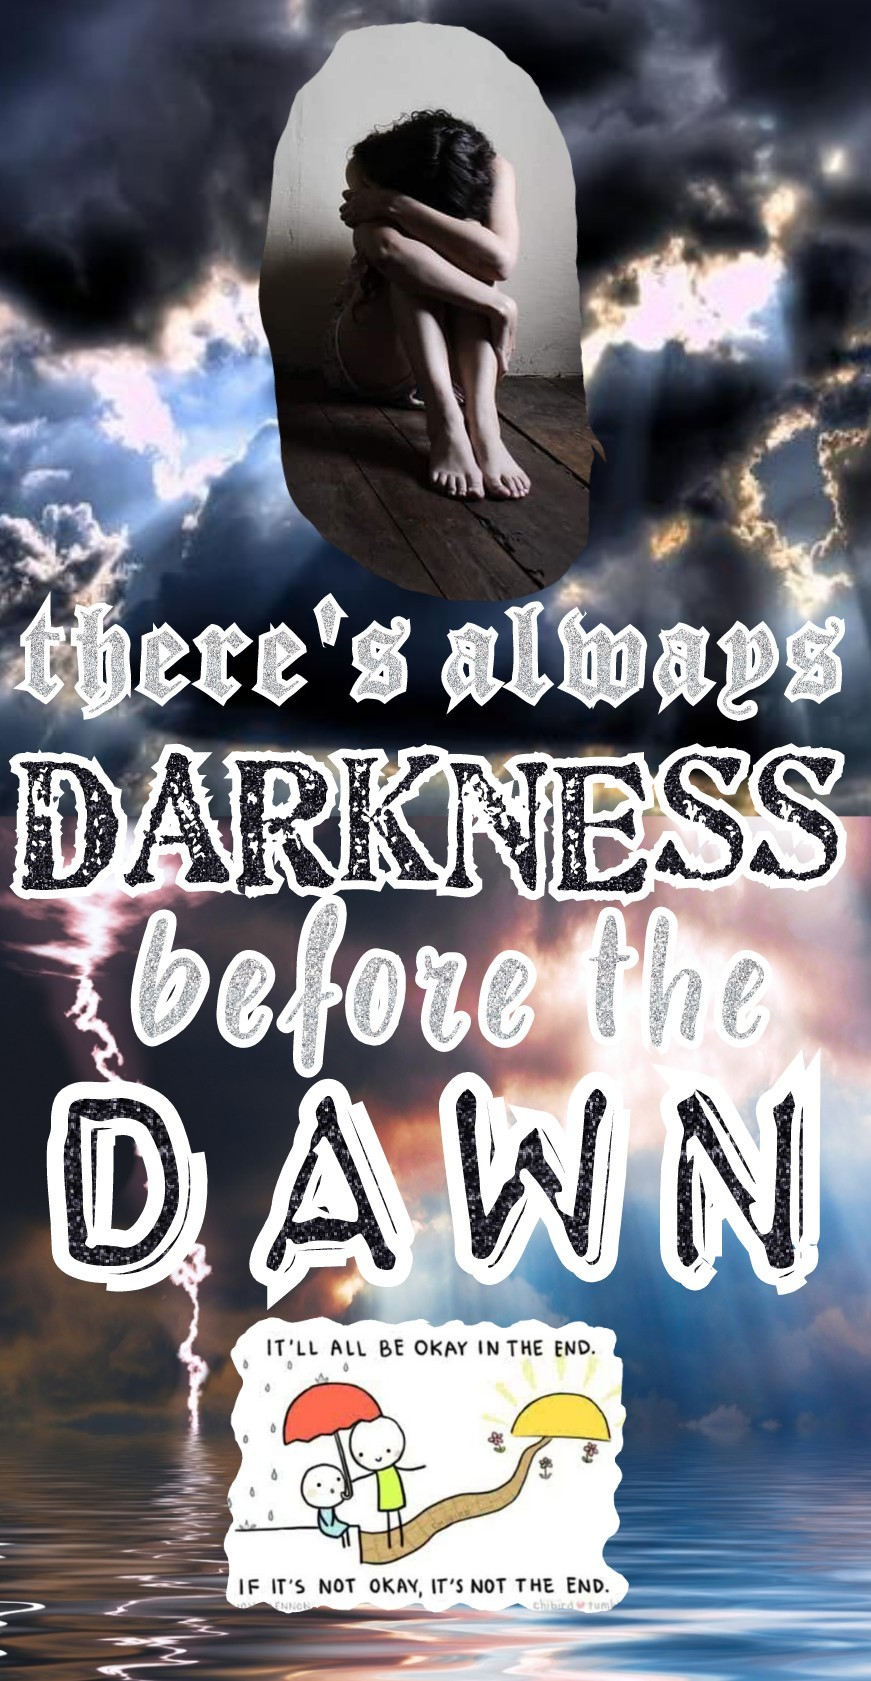 For Fun-Life, who is going through a sad time: There's always darkness before the dawn. Hopefully, it'll be okay in the end. I am always here.